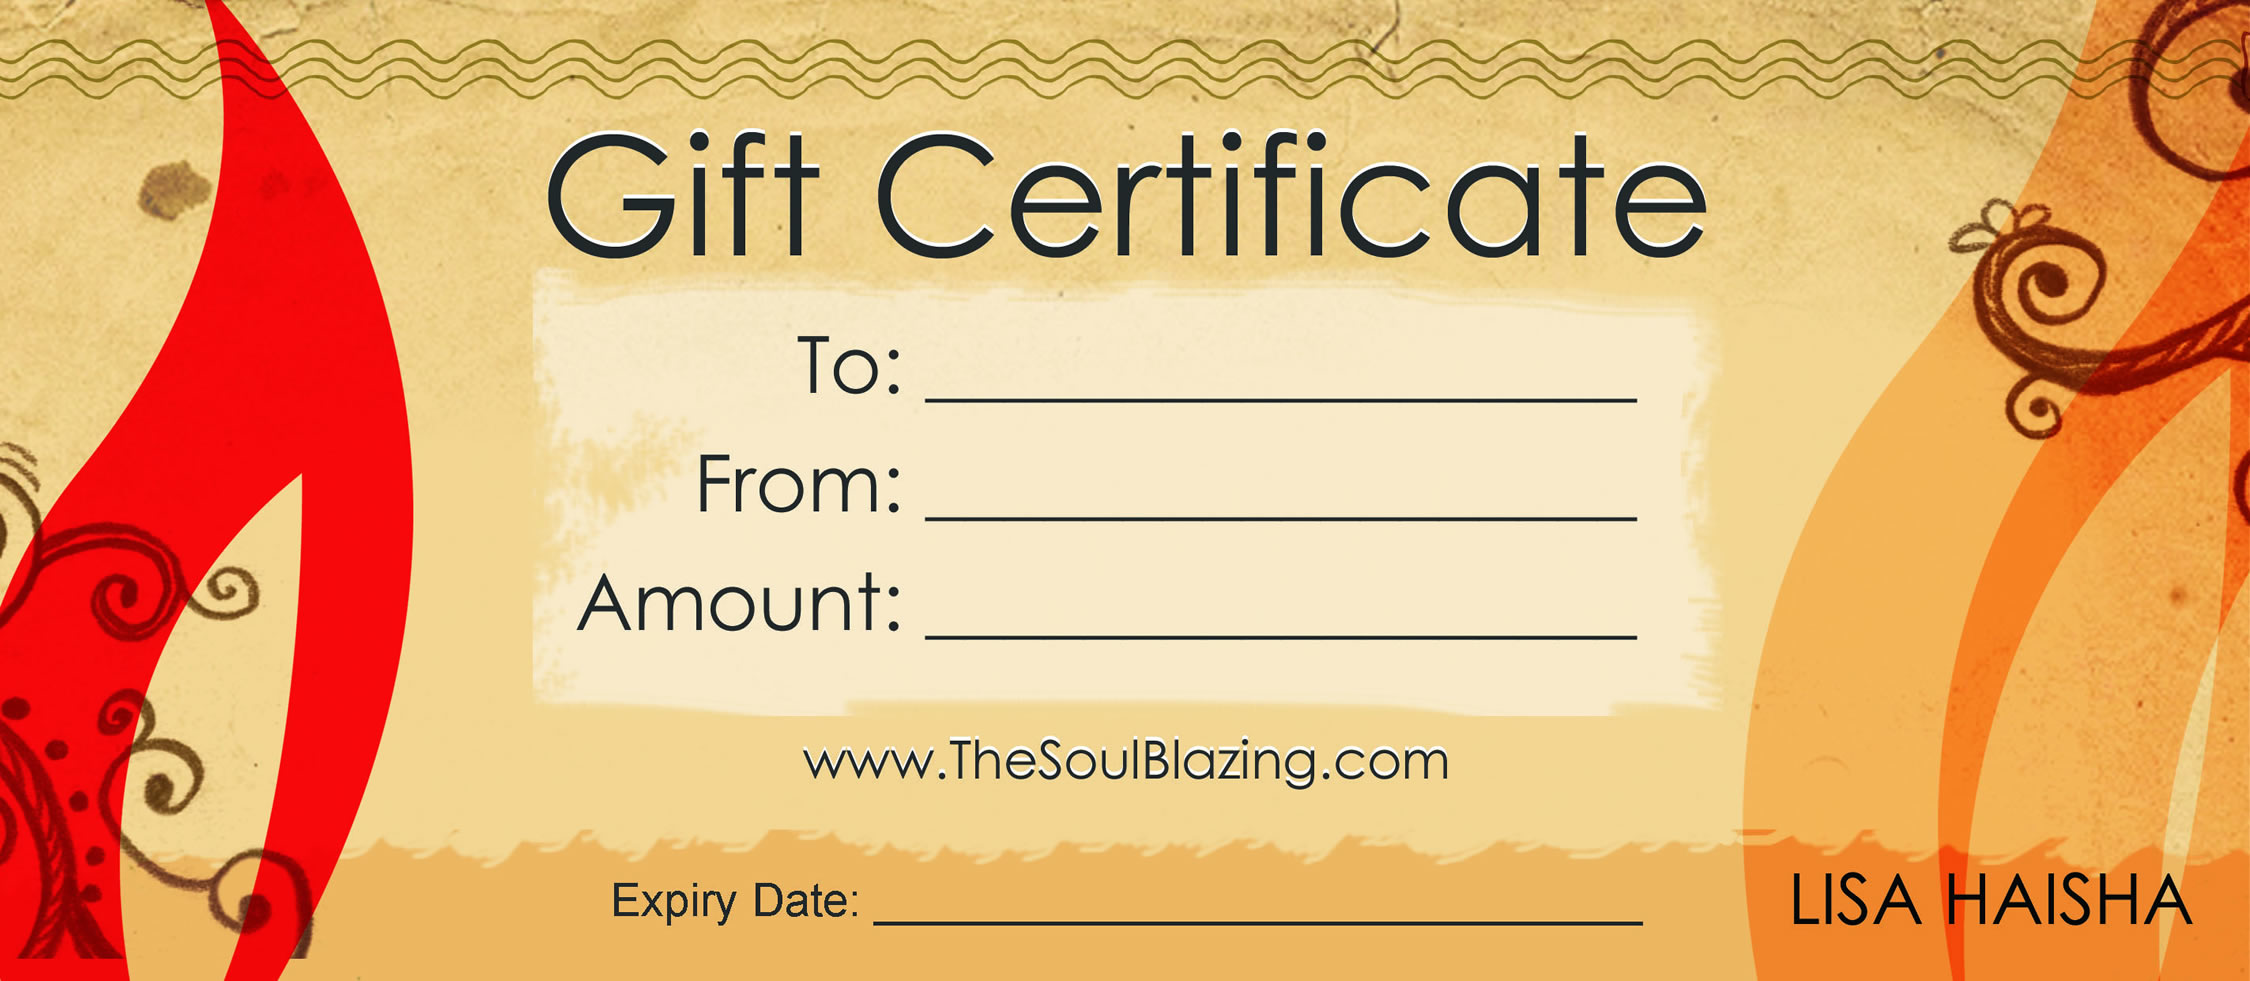 Free Holiday Gift Certificate Templates Printable Lamoureph